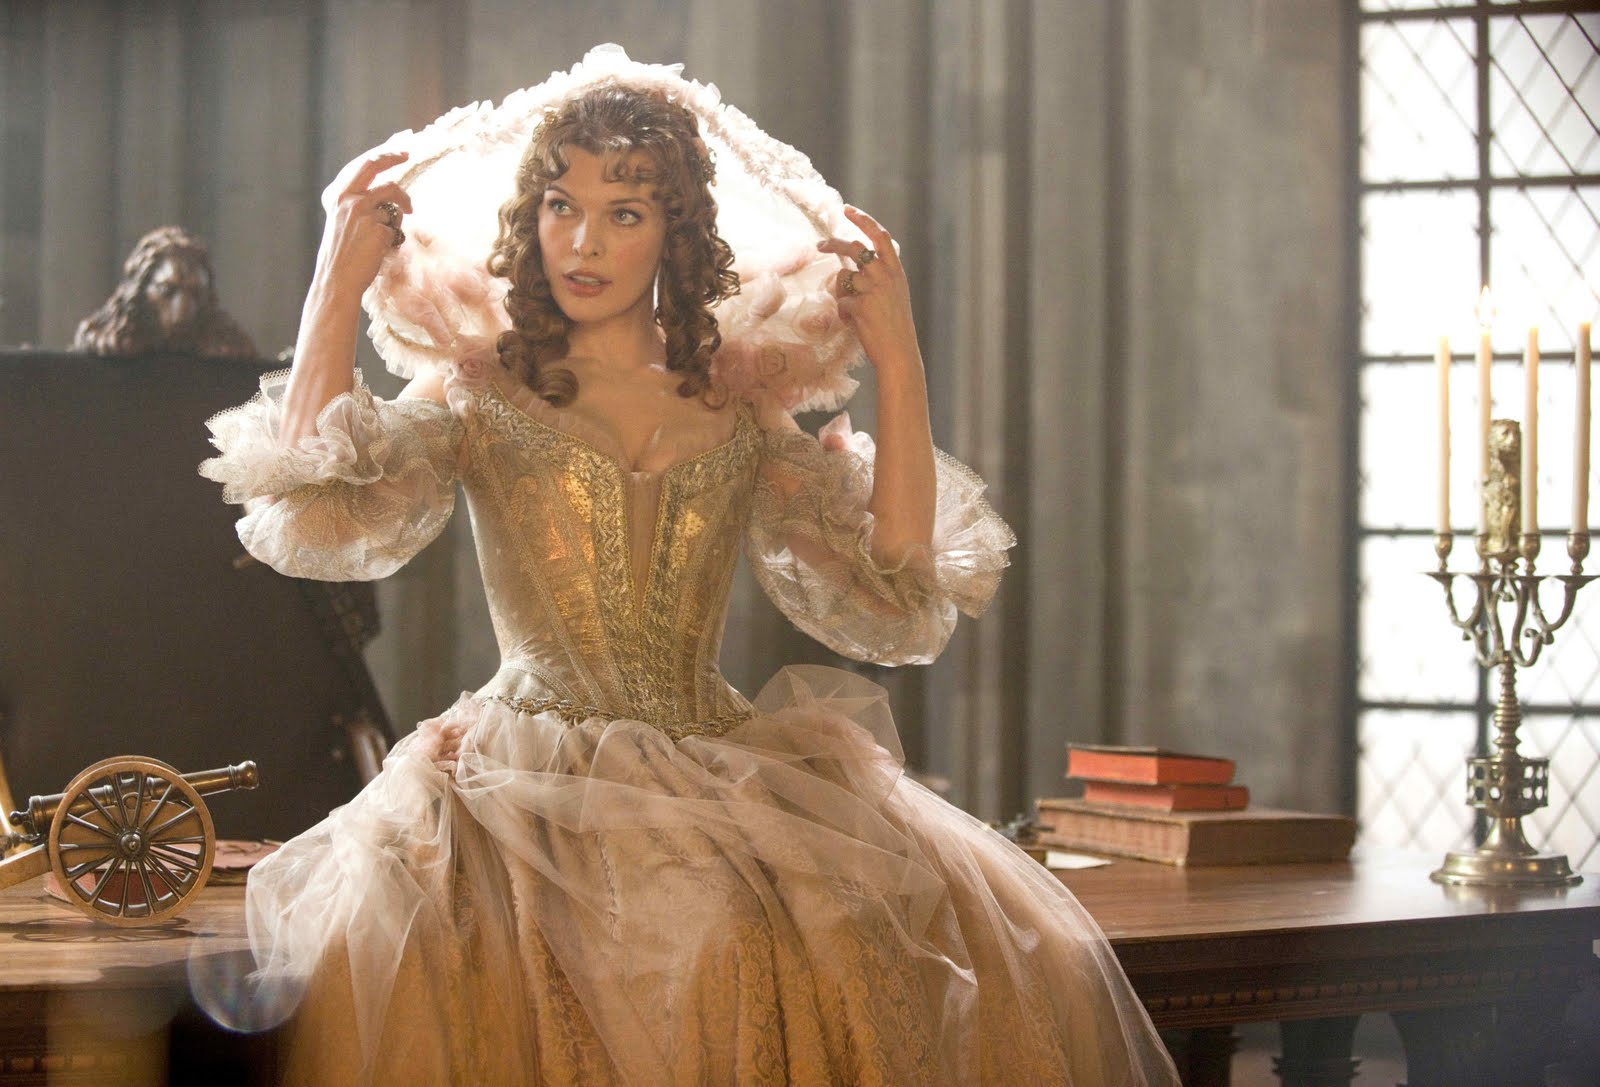 So Hollywood Chic The 17th Century The Early Modern Era